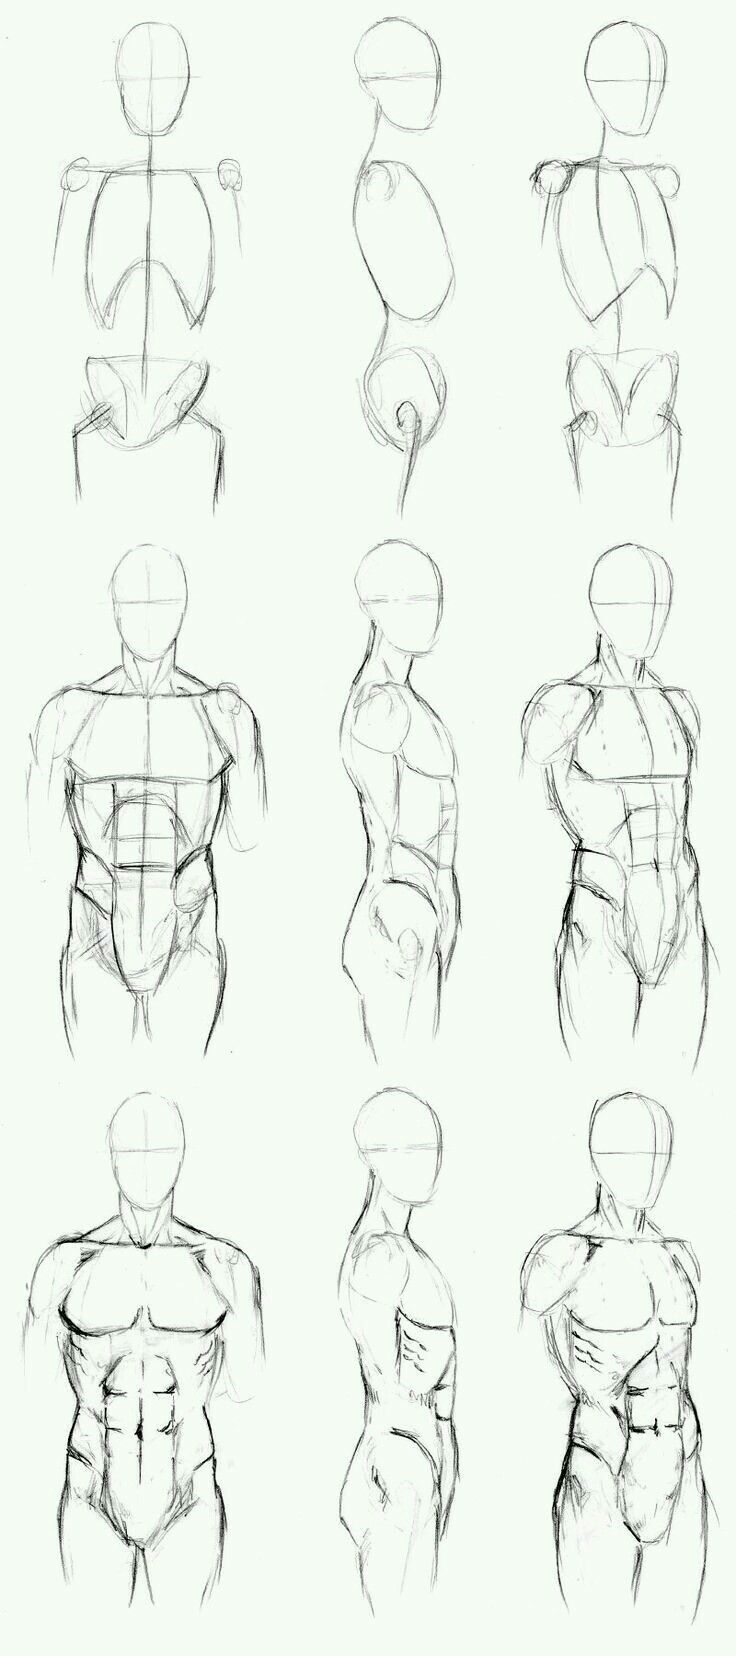 Pin by Vlad Lolov on а   Pinterest   Anatomy, Sketches and Tutorials